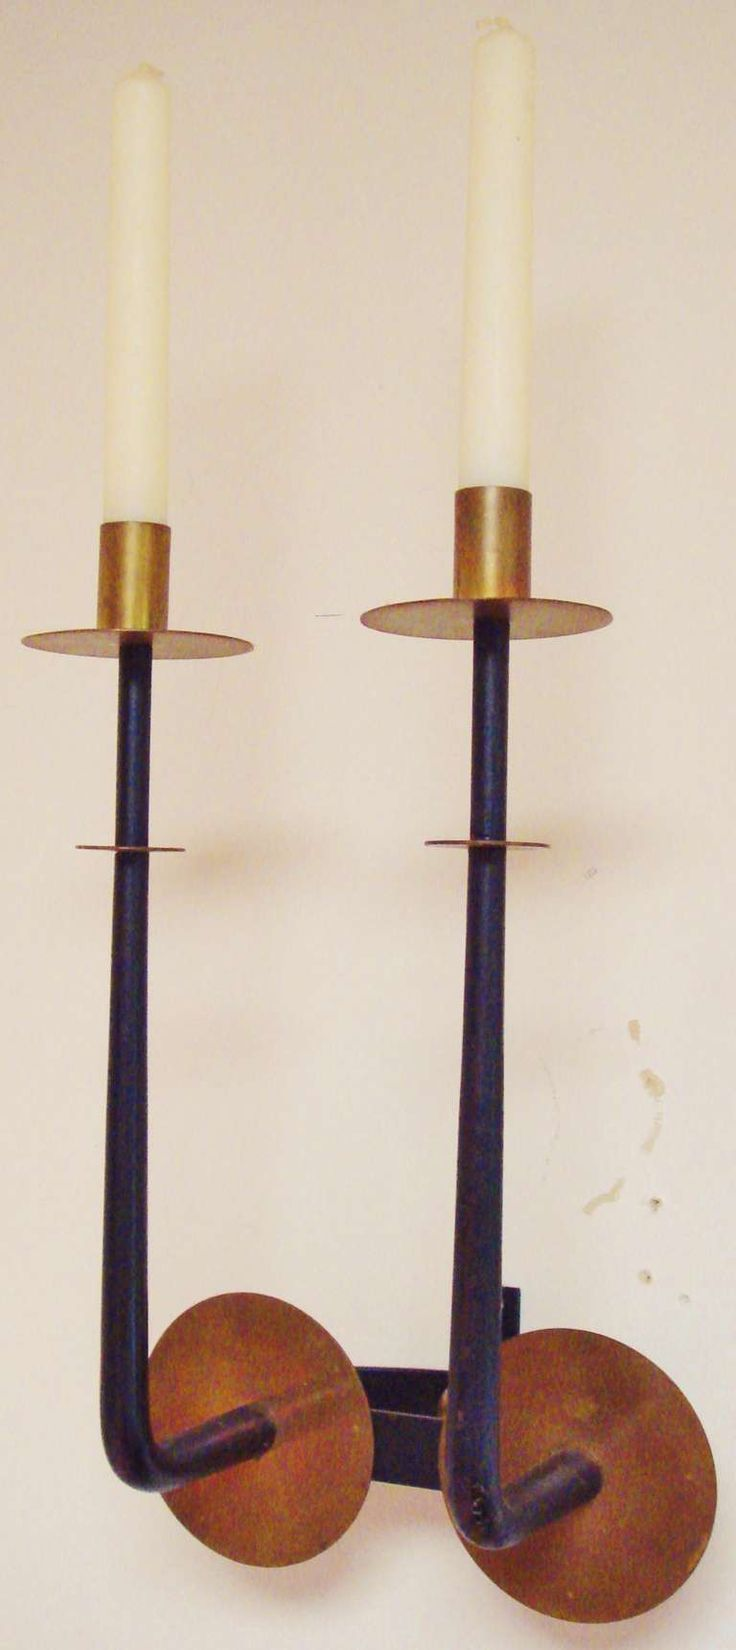 Pair of Large American Midcentury Candle Sconces in the Style of Tommi Parzinger | From a unique collection of antique and modern candleholders and candelabra at http://www.1stdibs.com/furniture/lighting/candleholders-candelabra/